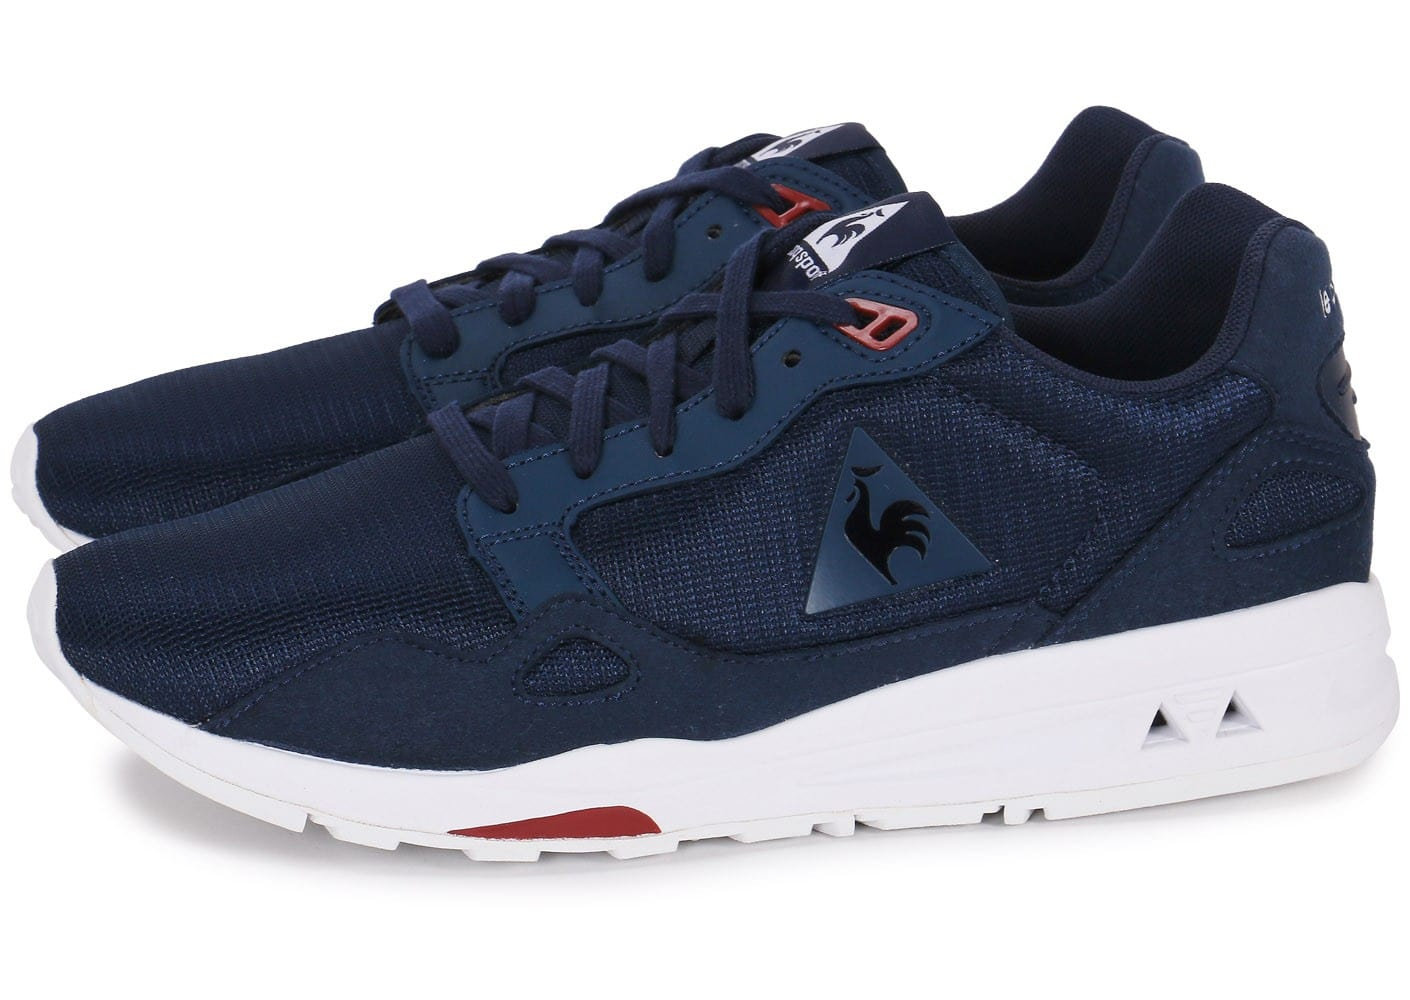 le coq sportif lcs r900 monochrome bleu marine chaussures homme chausport. Black Bedroom Furniture Sets. Home Design Ideas